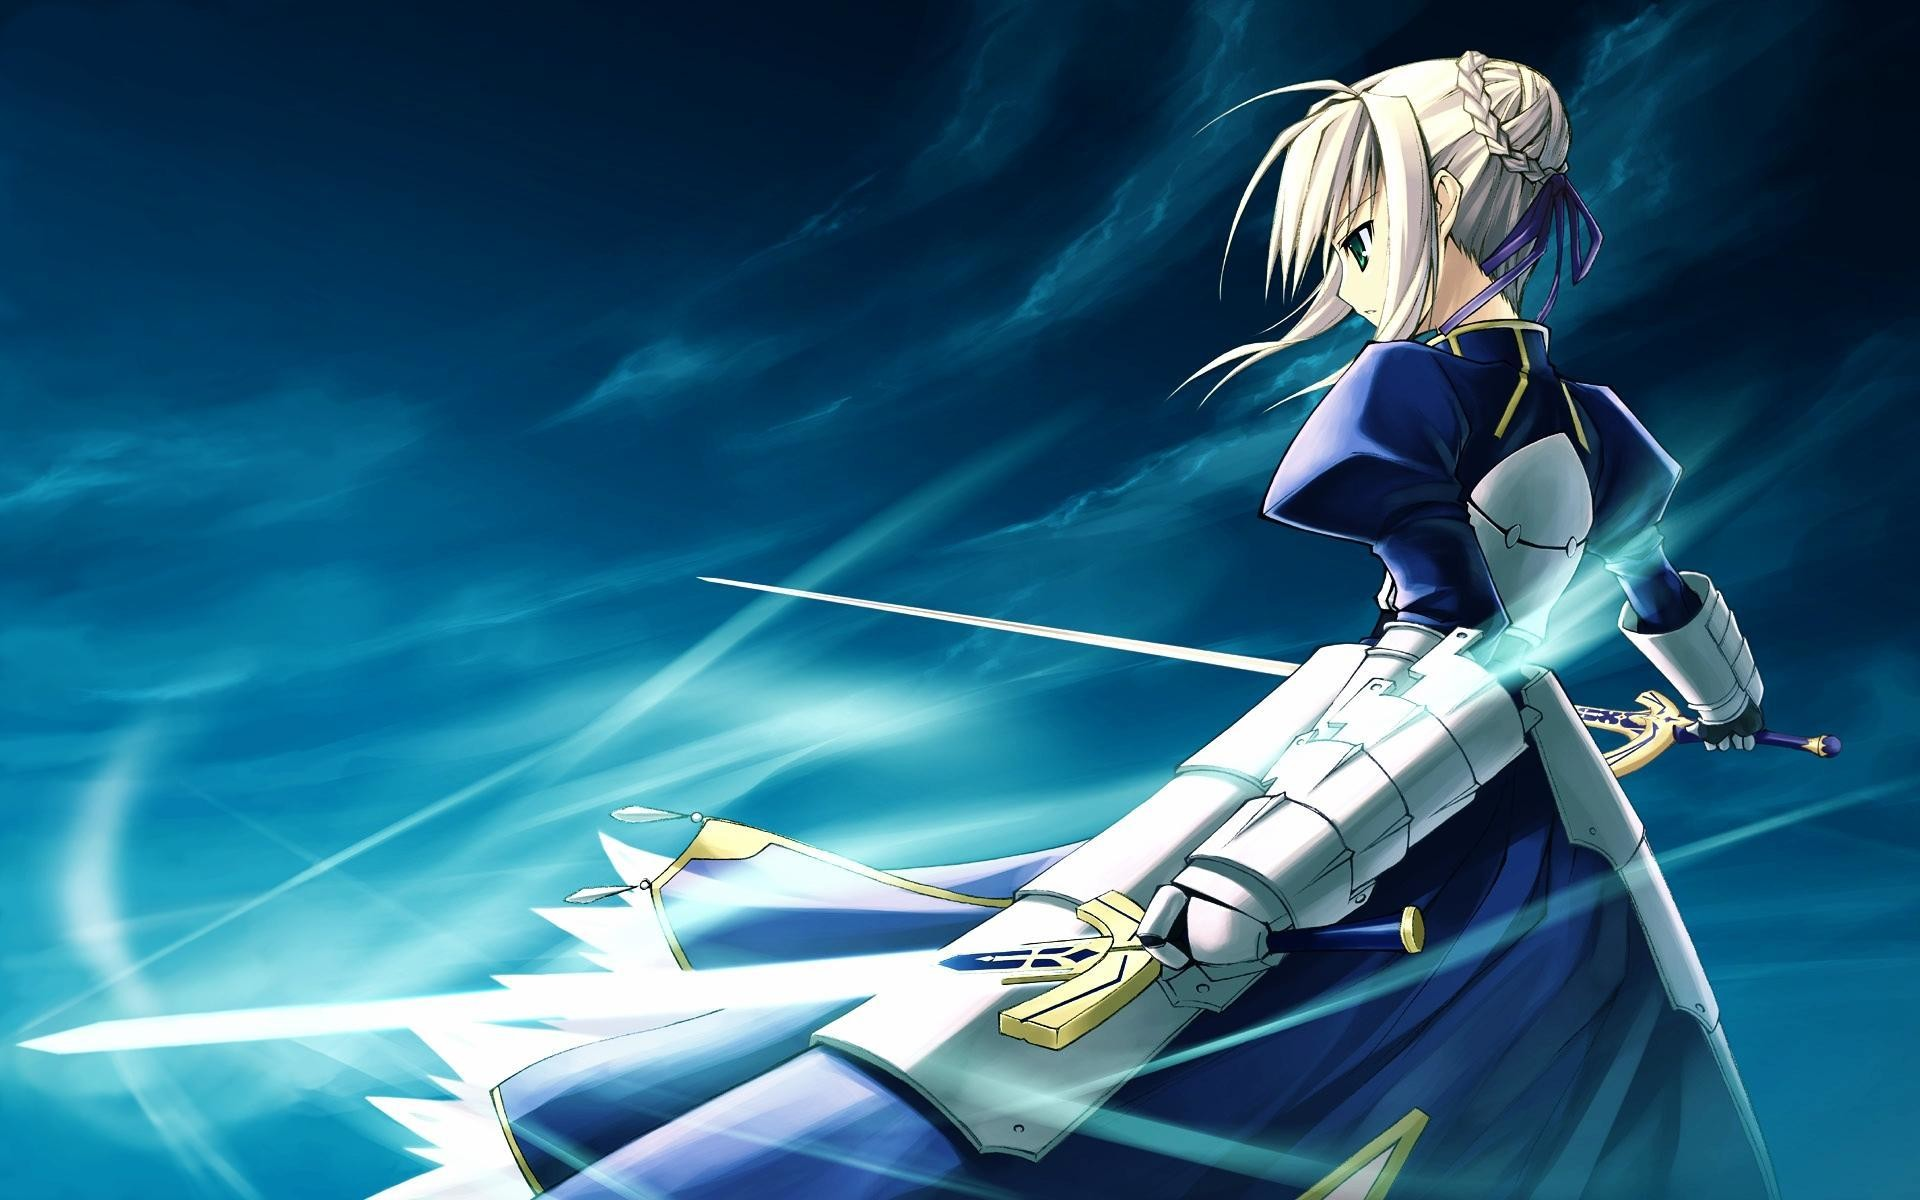 1920x1200 Saber Iphone Wallpaper : Fate stay night anime saber character anime art